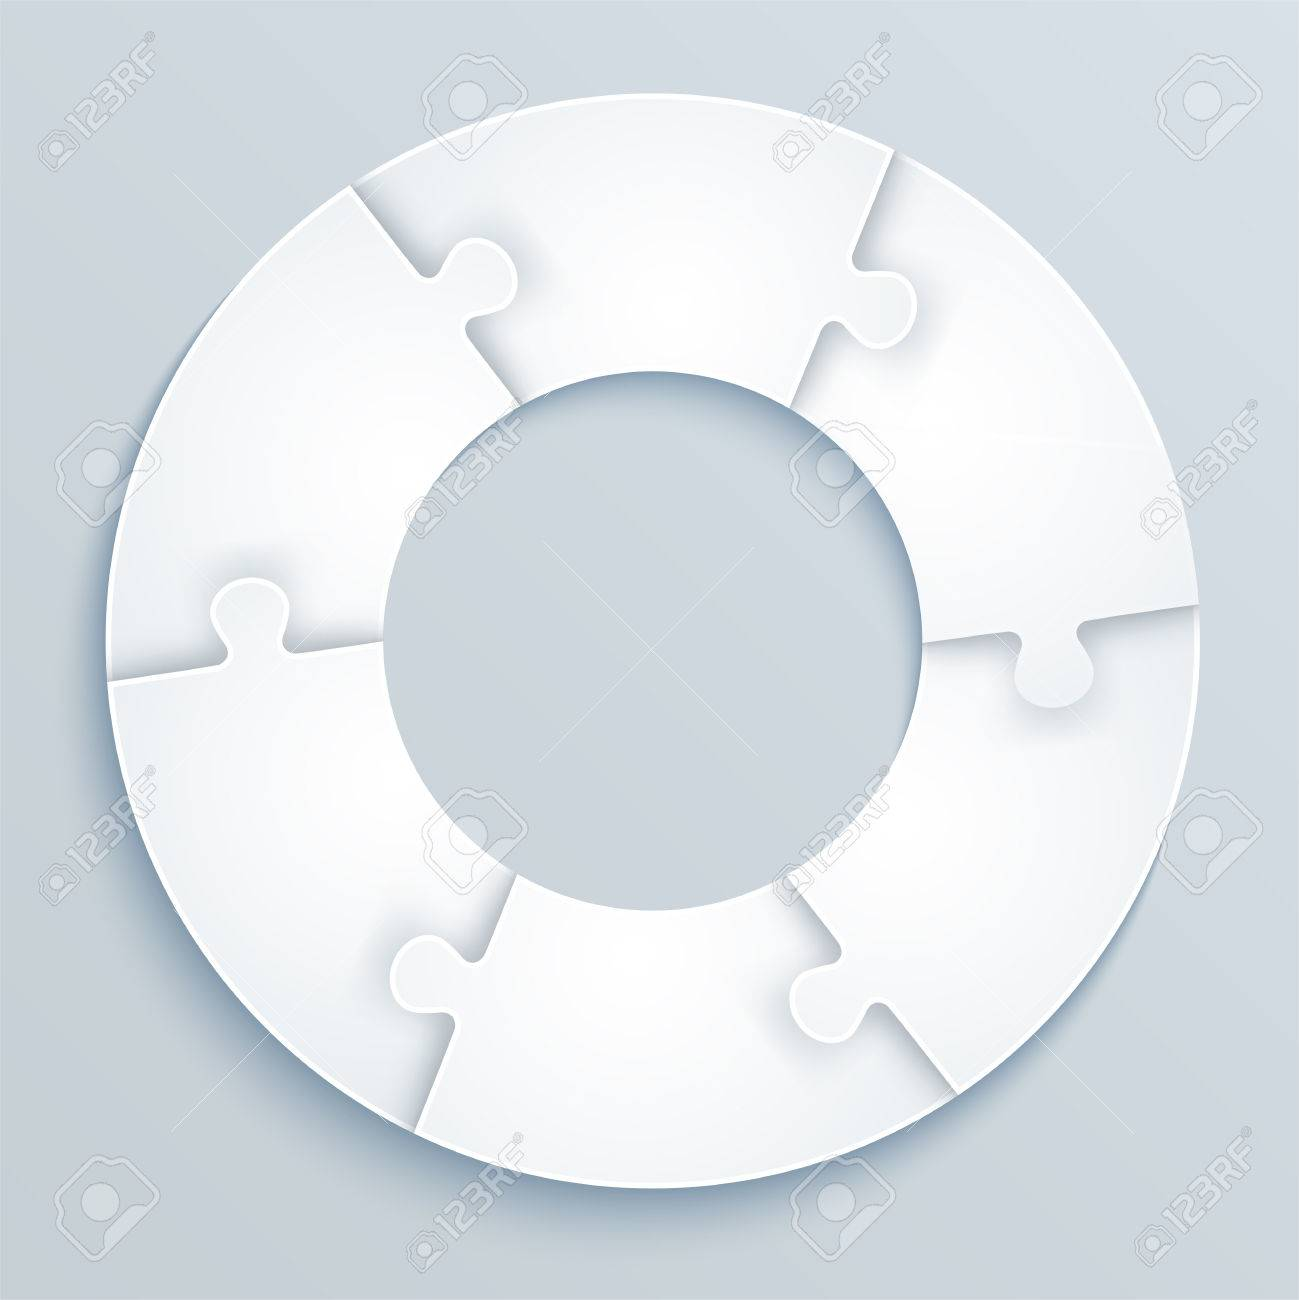 Parts Of Paper Puzzles In The Form A Circle 6 Pieces Stock Vector